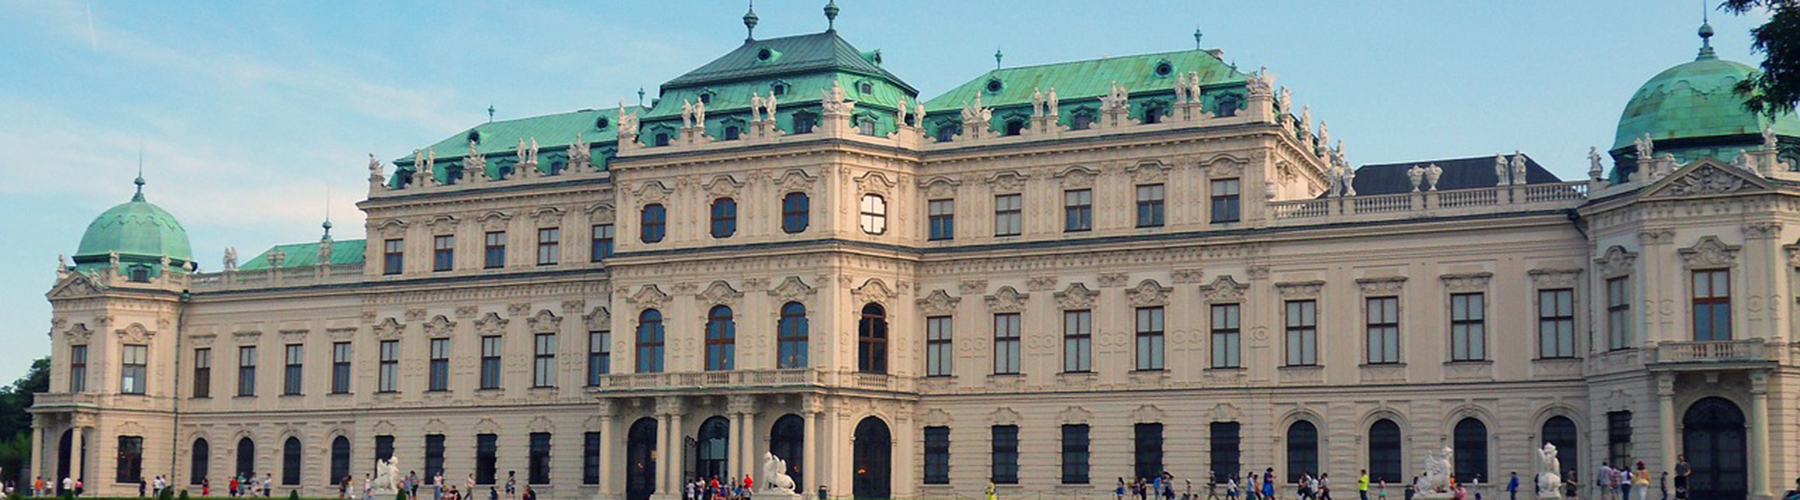 Vienna – Hotels close to Belvedere Palace. Maps of Vienna, Photos and Reviews for each Hotel in Vienna.